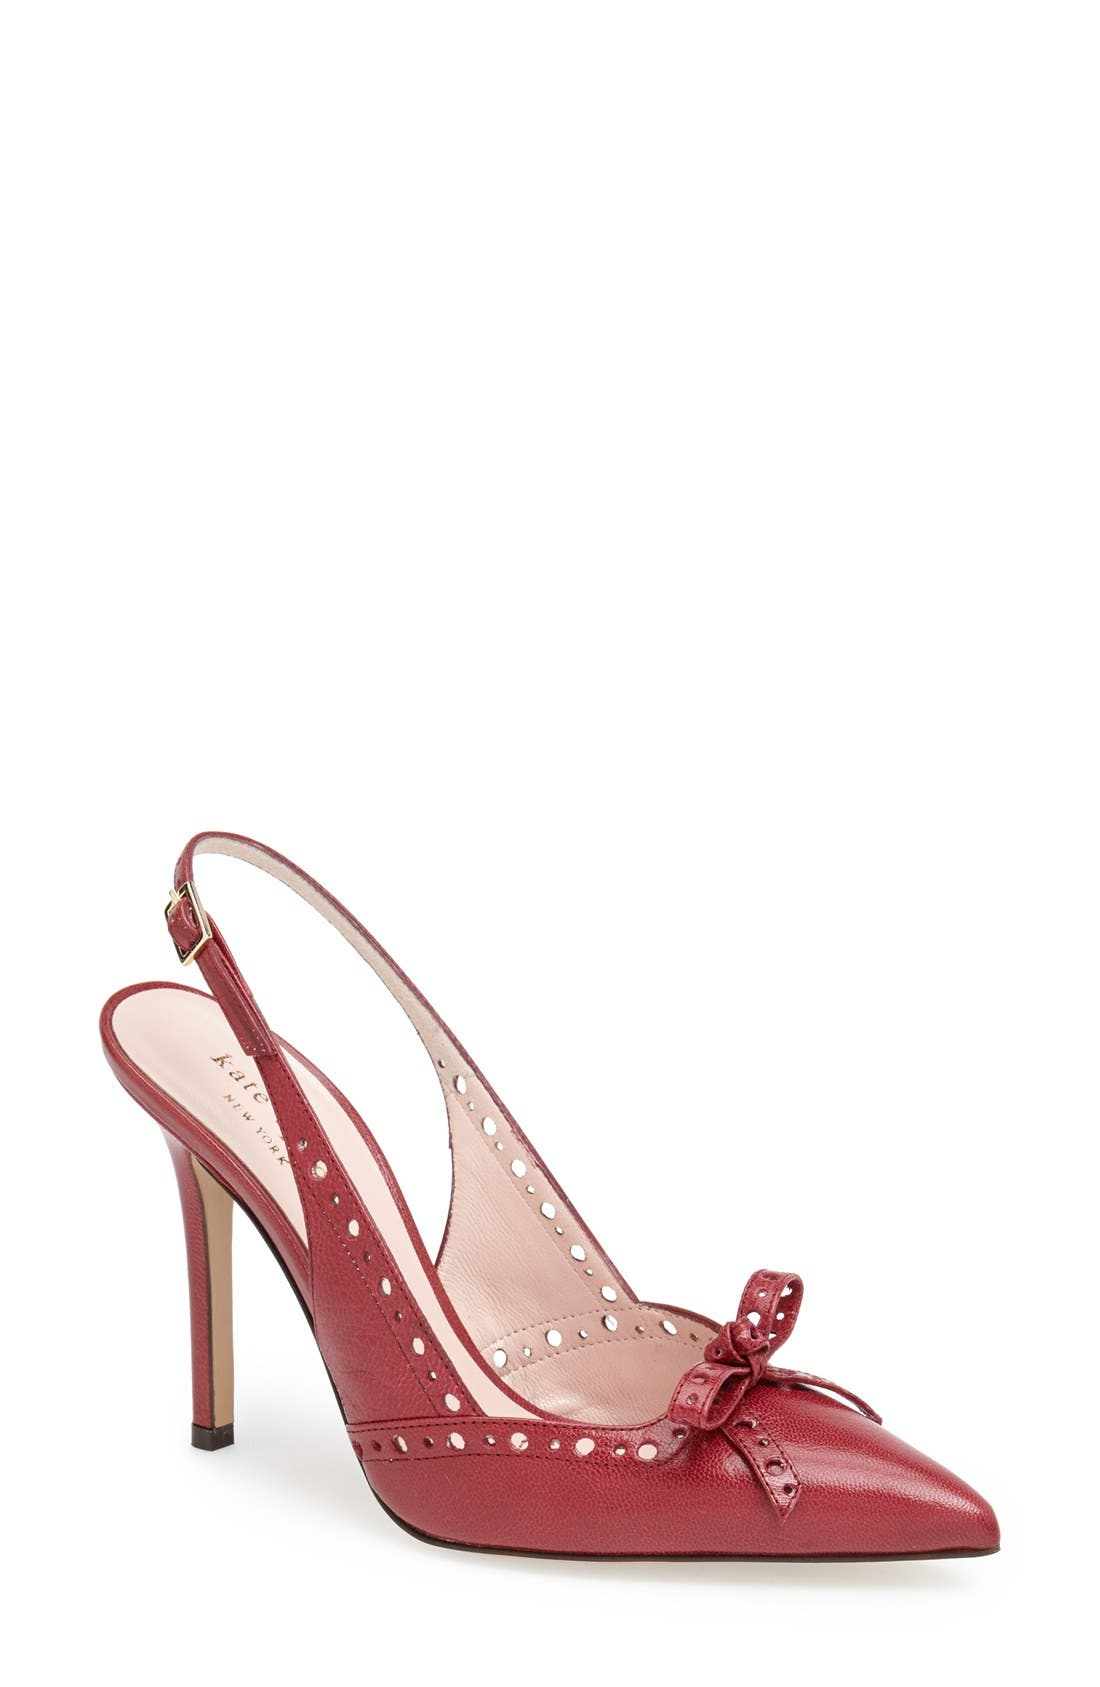 Alternate Image 1 Selected - kate spade new york 'lali' pump (Women)